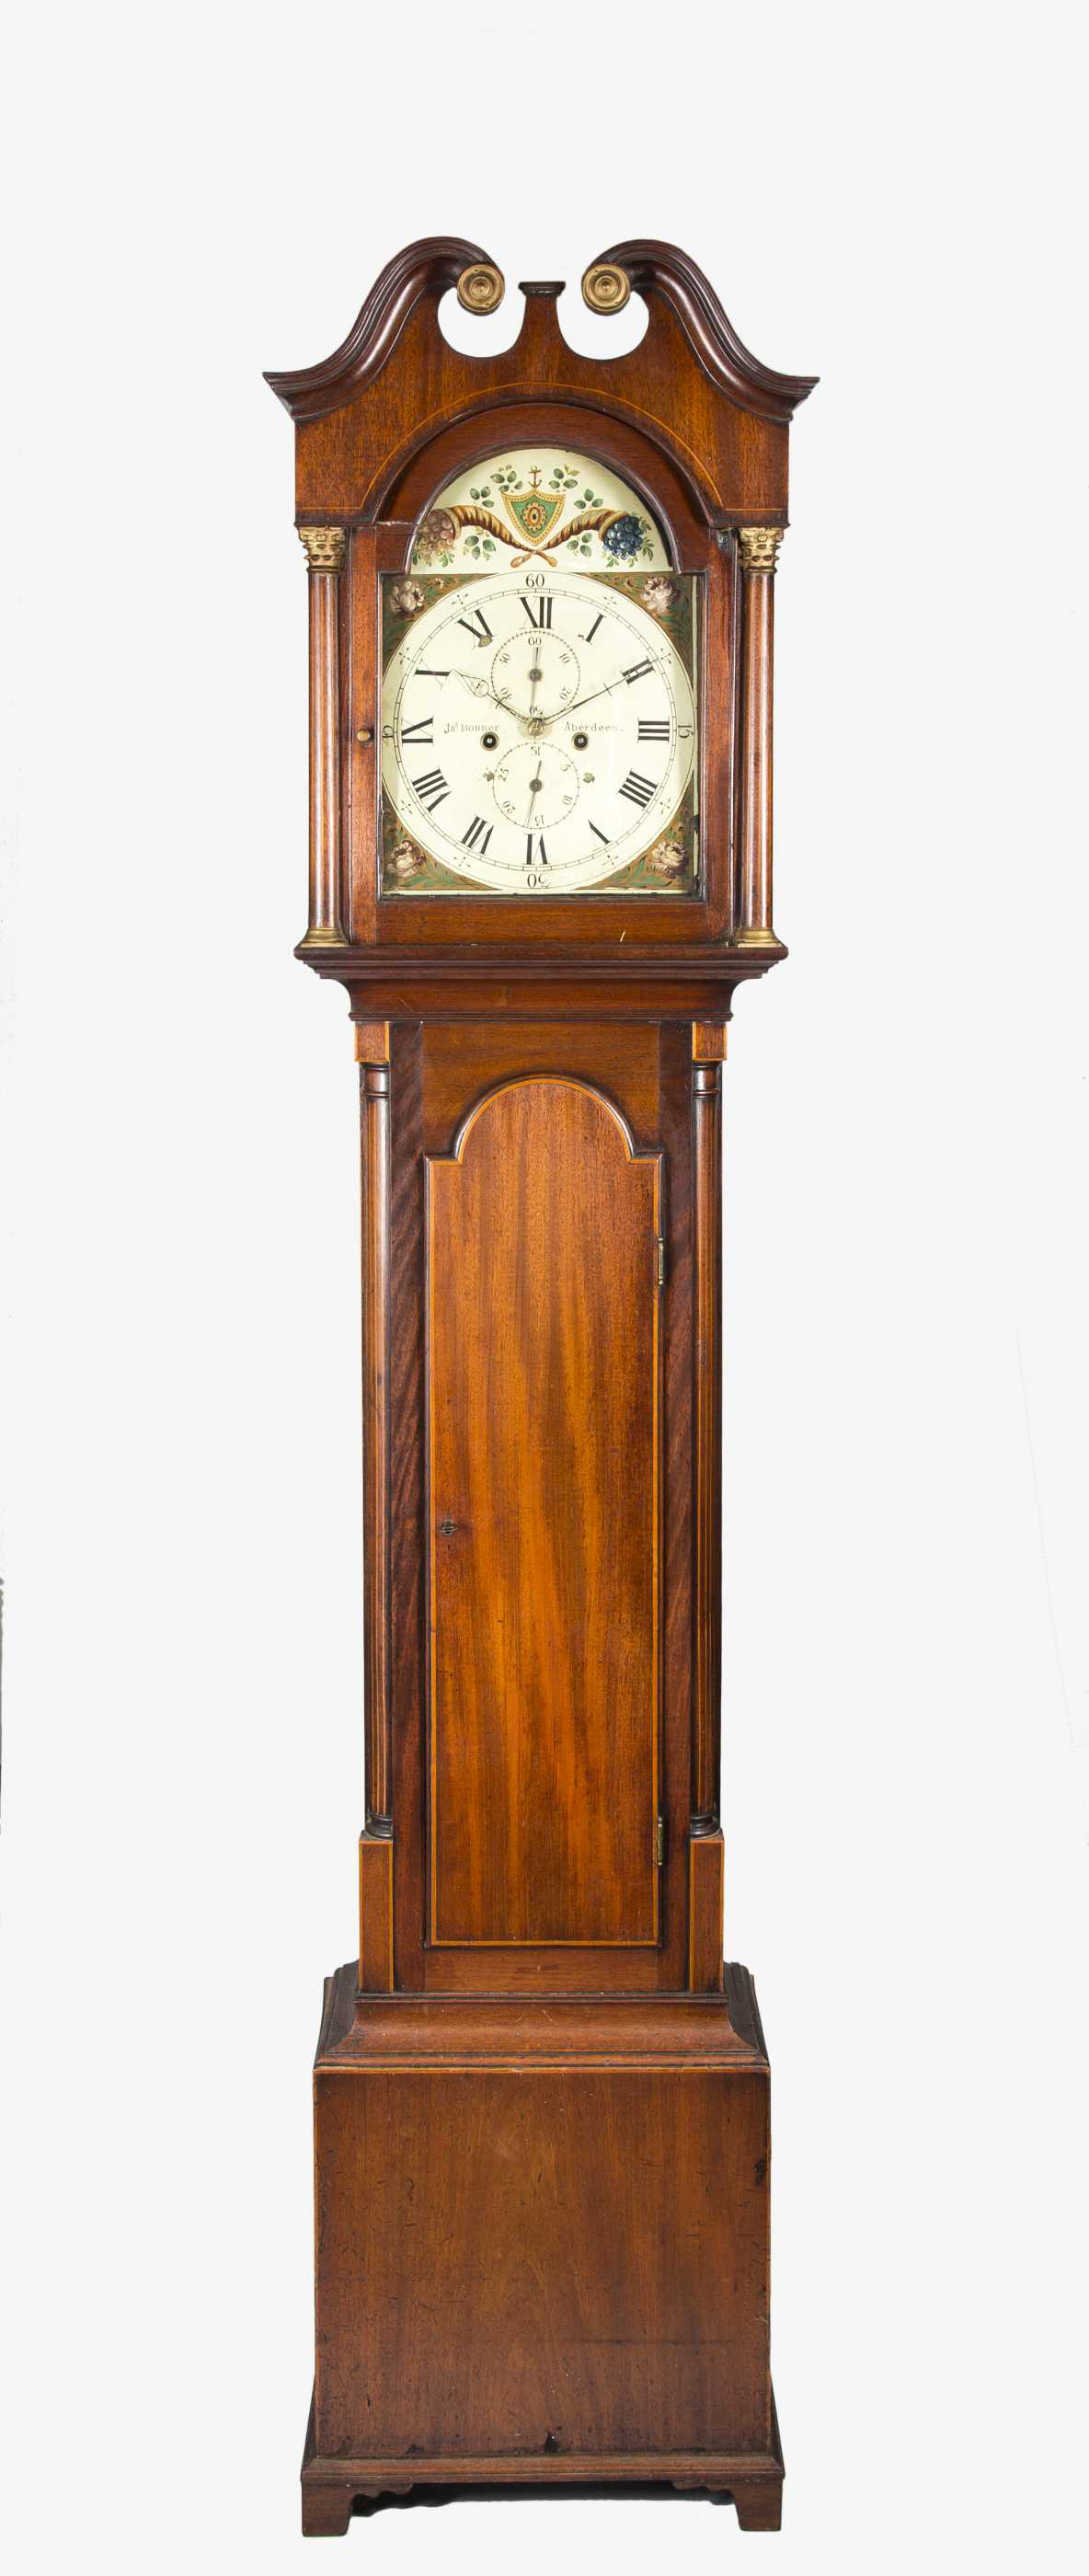 tall case clock dating Early american clock styles antique grandfather clocks the most commonly recognized form of antique clock is typically referred to as a grandfather clock known among collectors as tall case clocks or tall clocks, these early american antique clocks range in size, but are normally around eight feet tall.